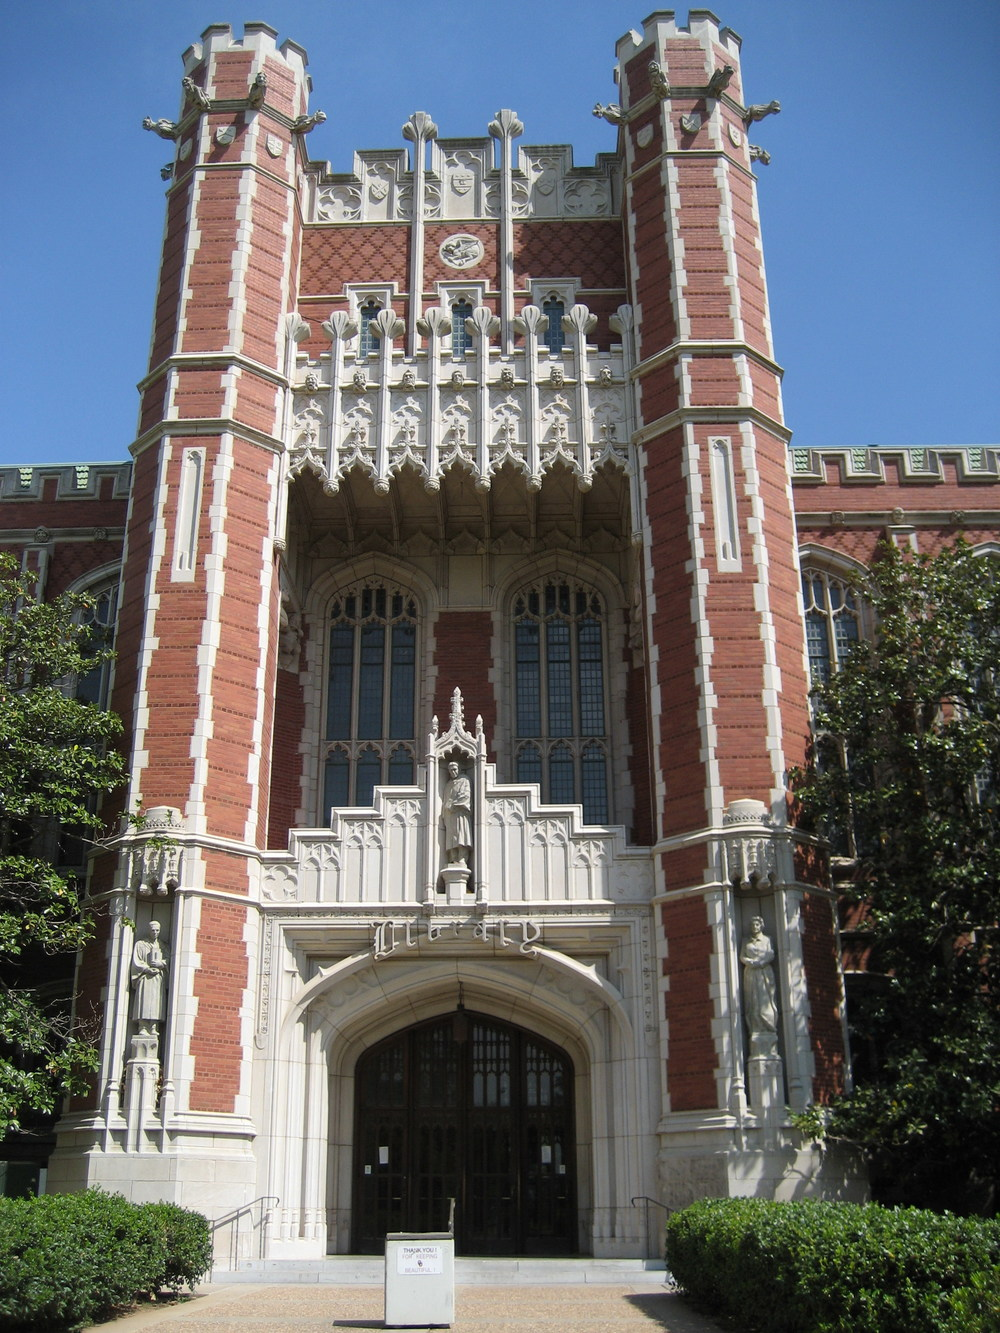 Bizzell_Library_4-15-2006_11-20-33_AM.jpg